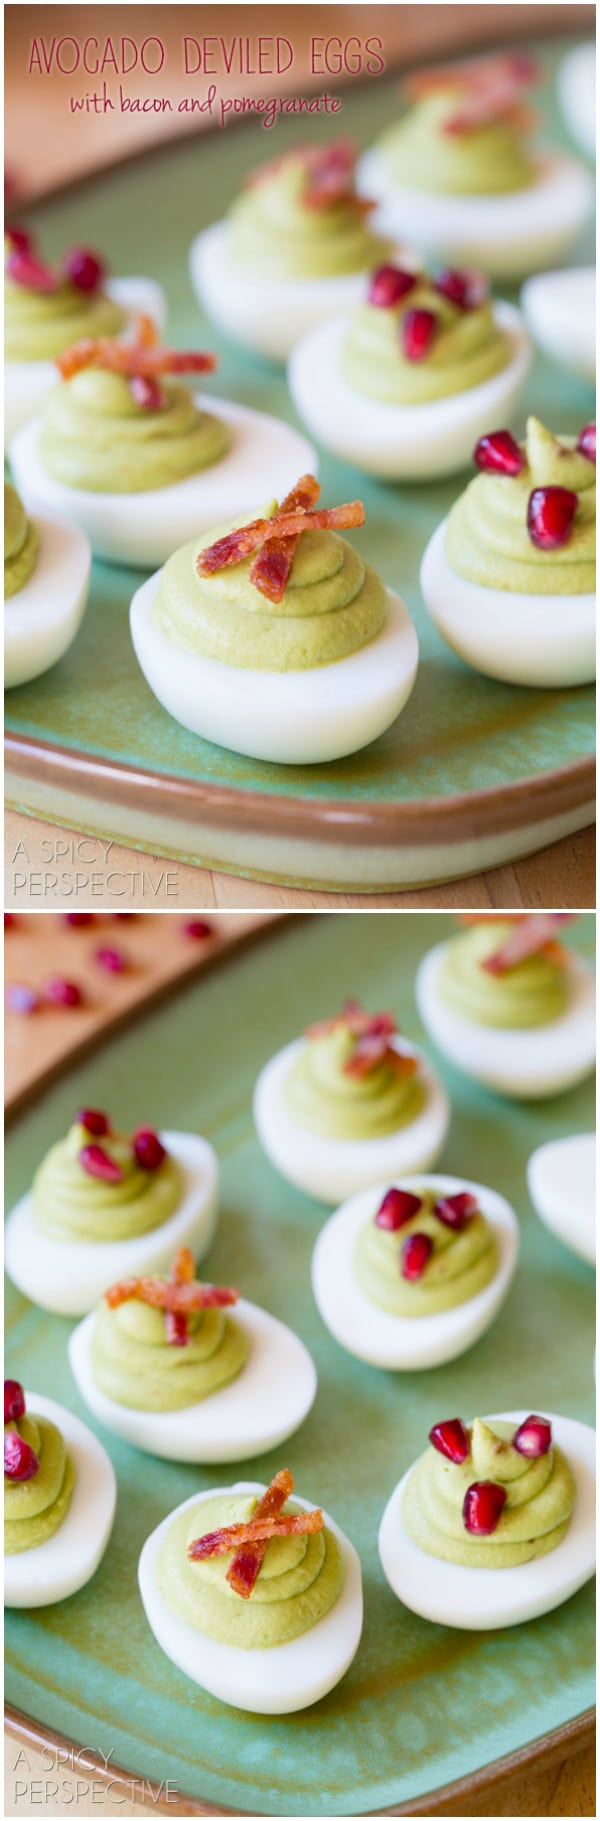 Avocado Deviled Eggs with Bacon and Pomegranate Recipe